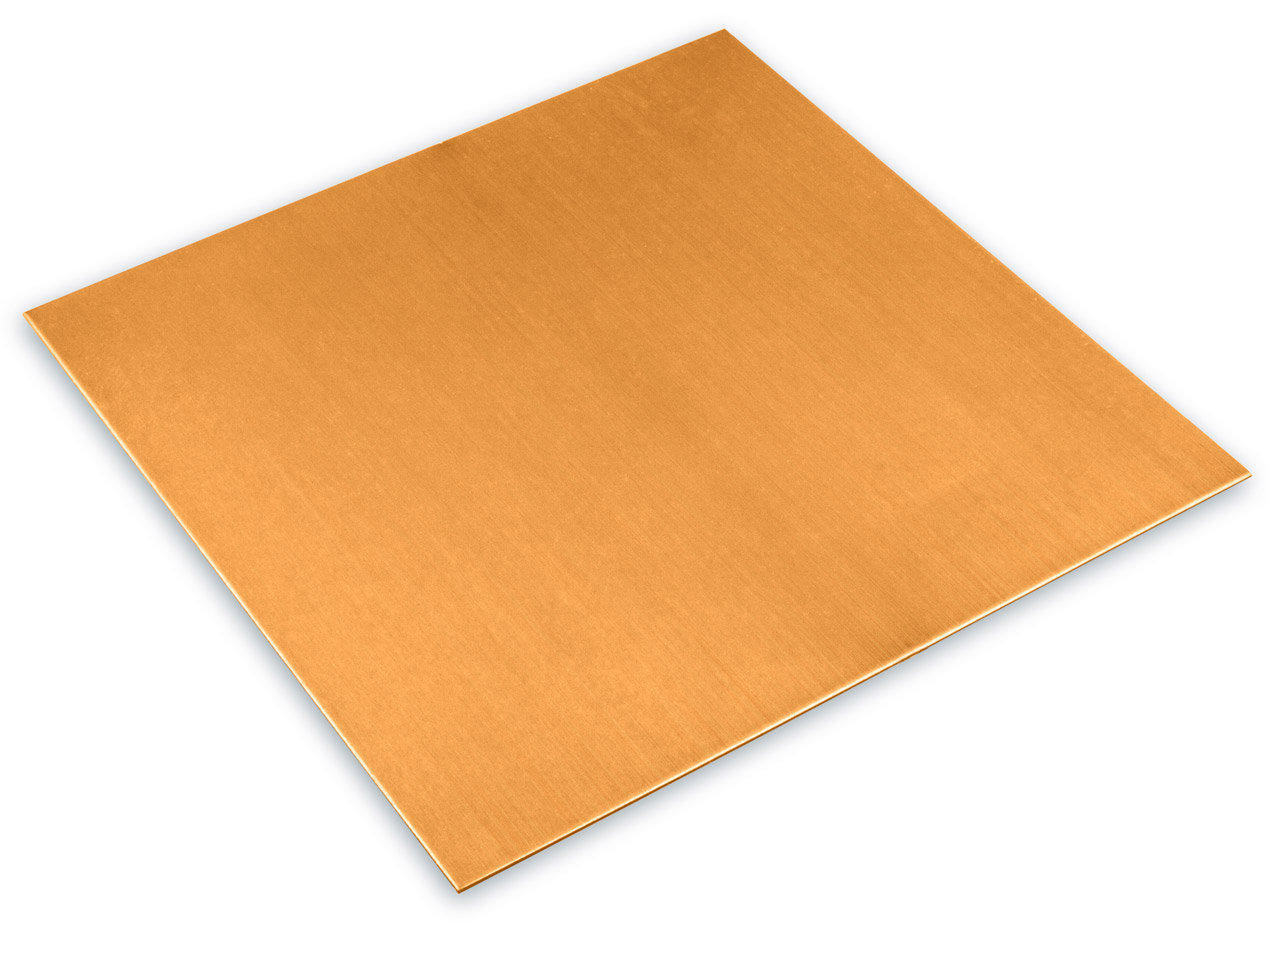 Copper Sheet 75x75x0.9mm